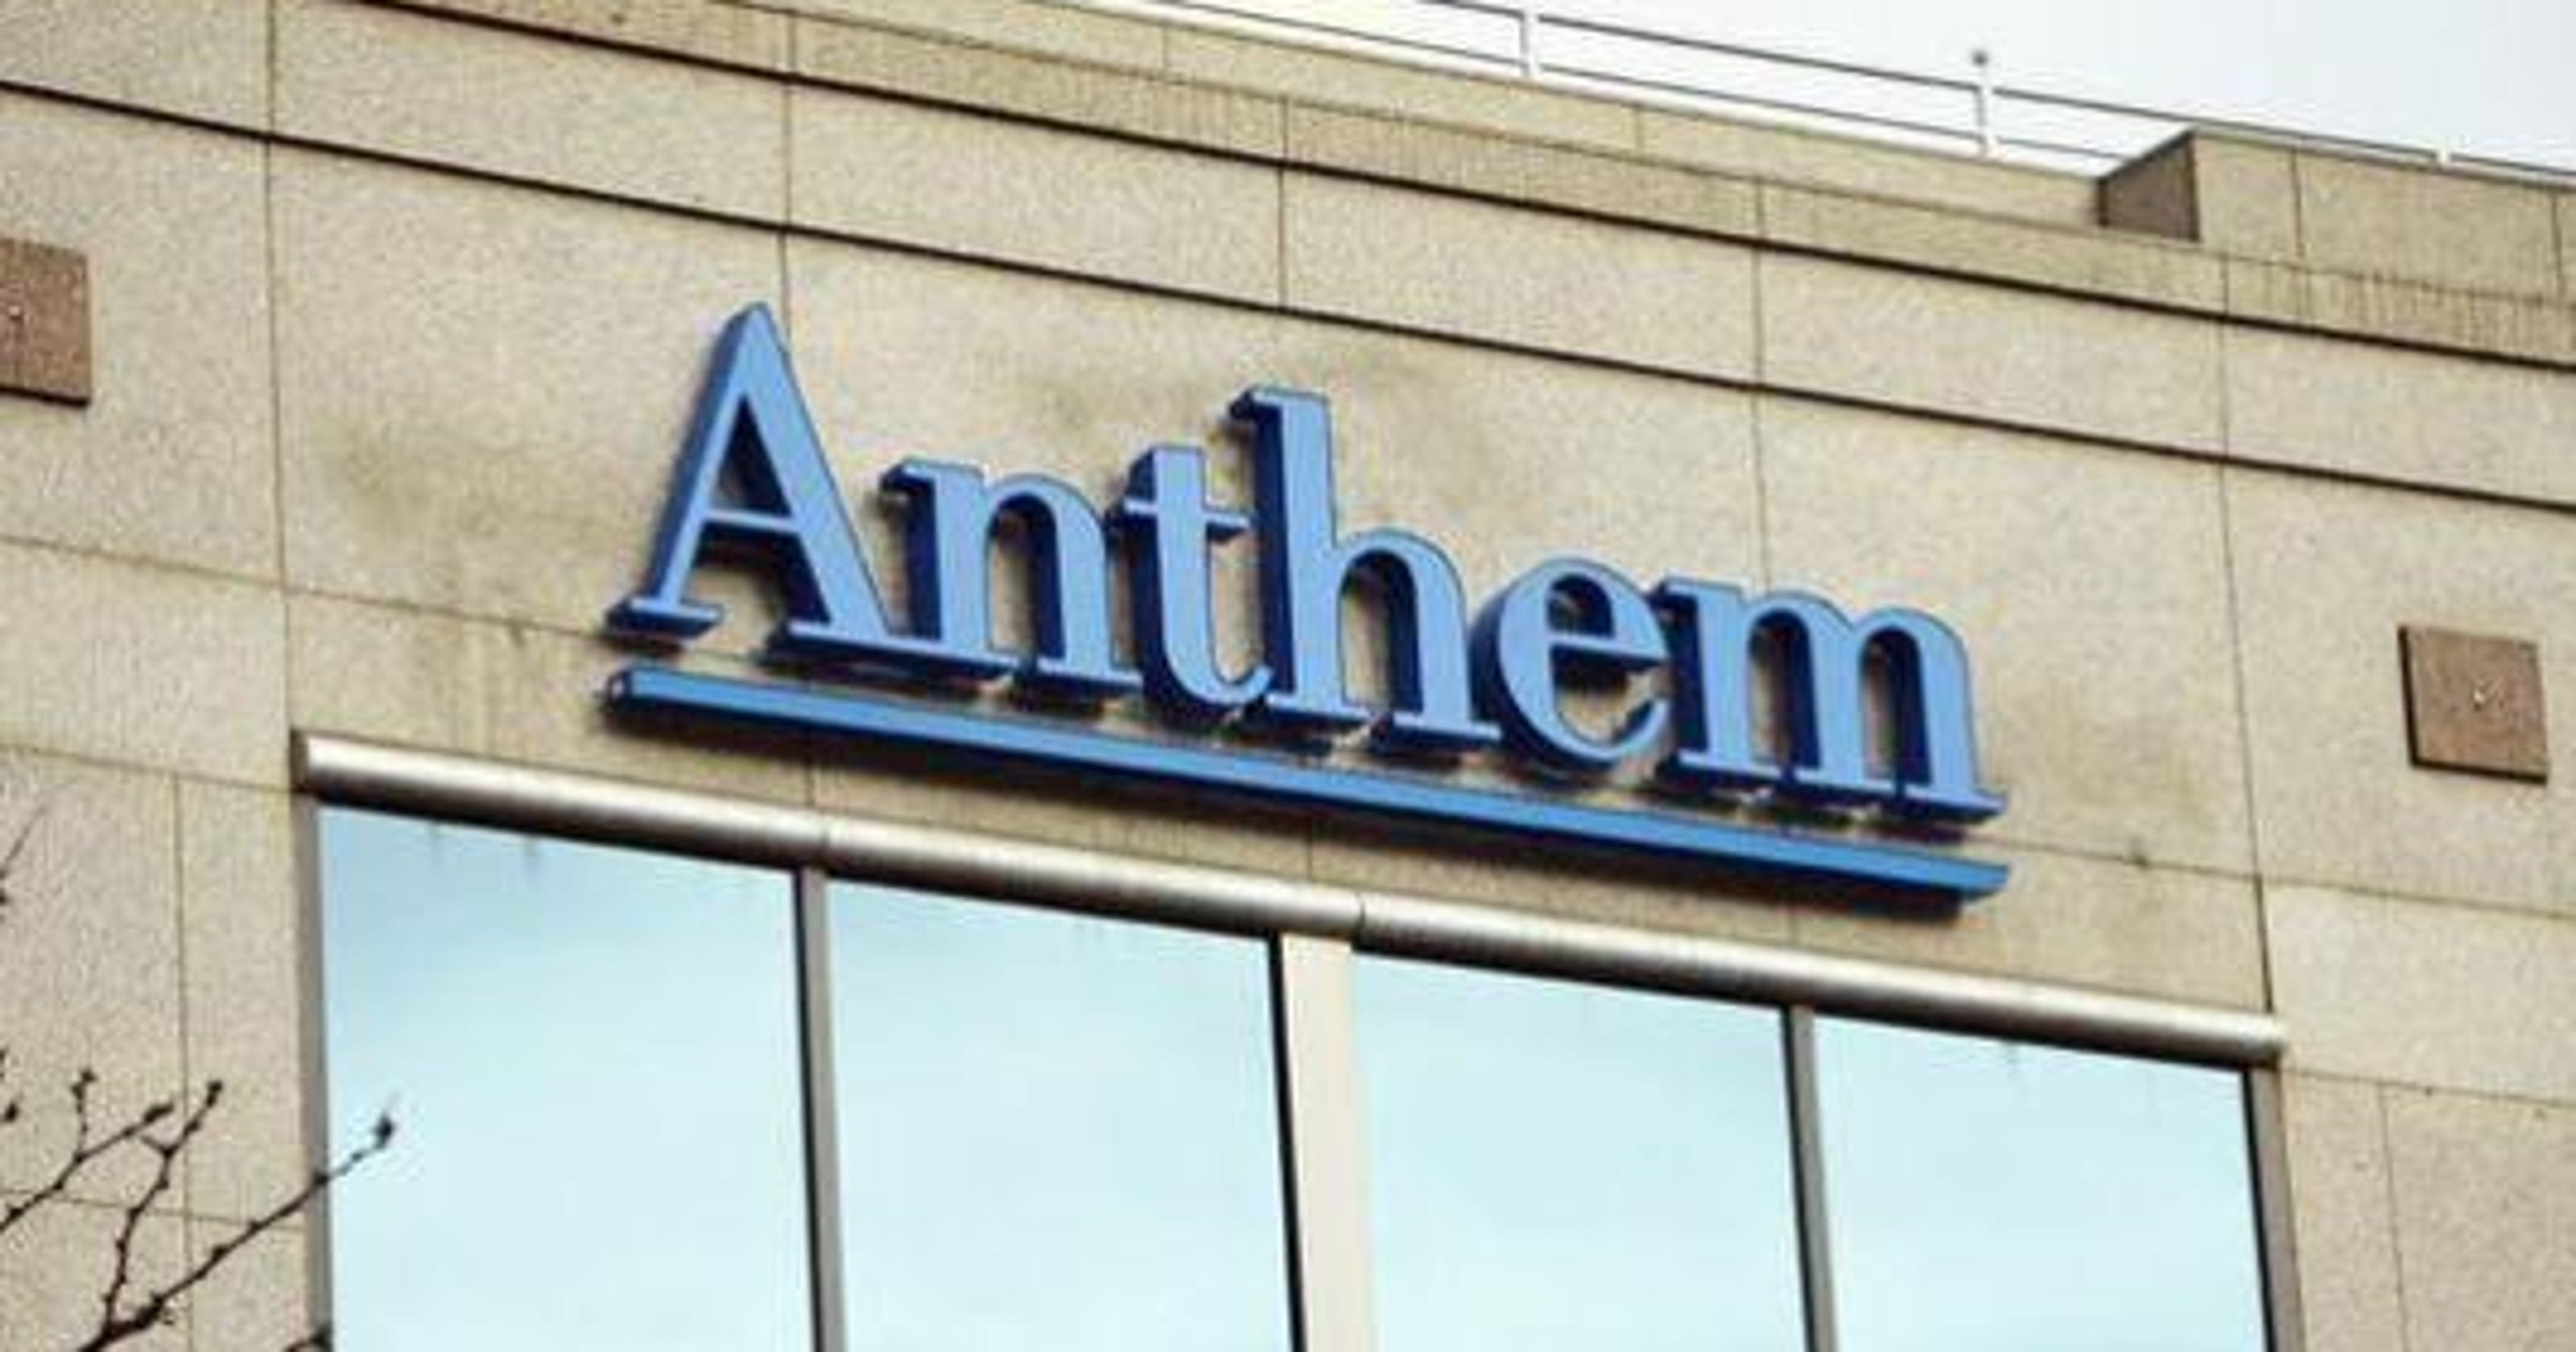 Anthem settles lawsuit over denial of coverage for autism